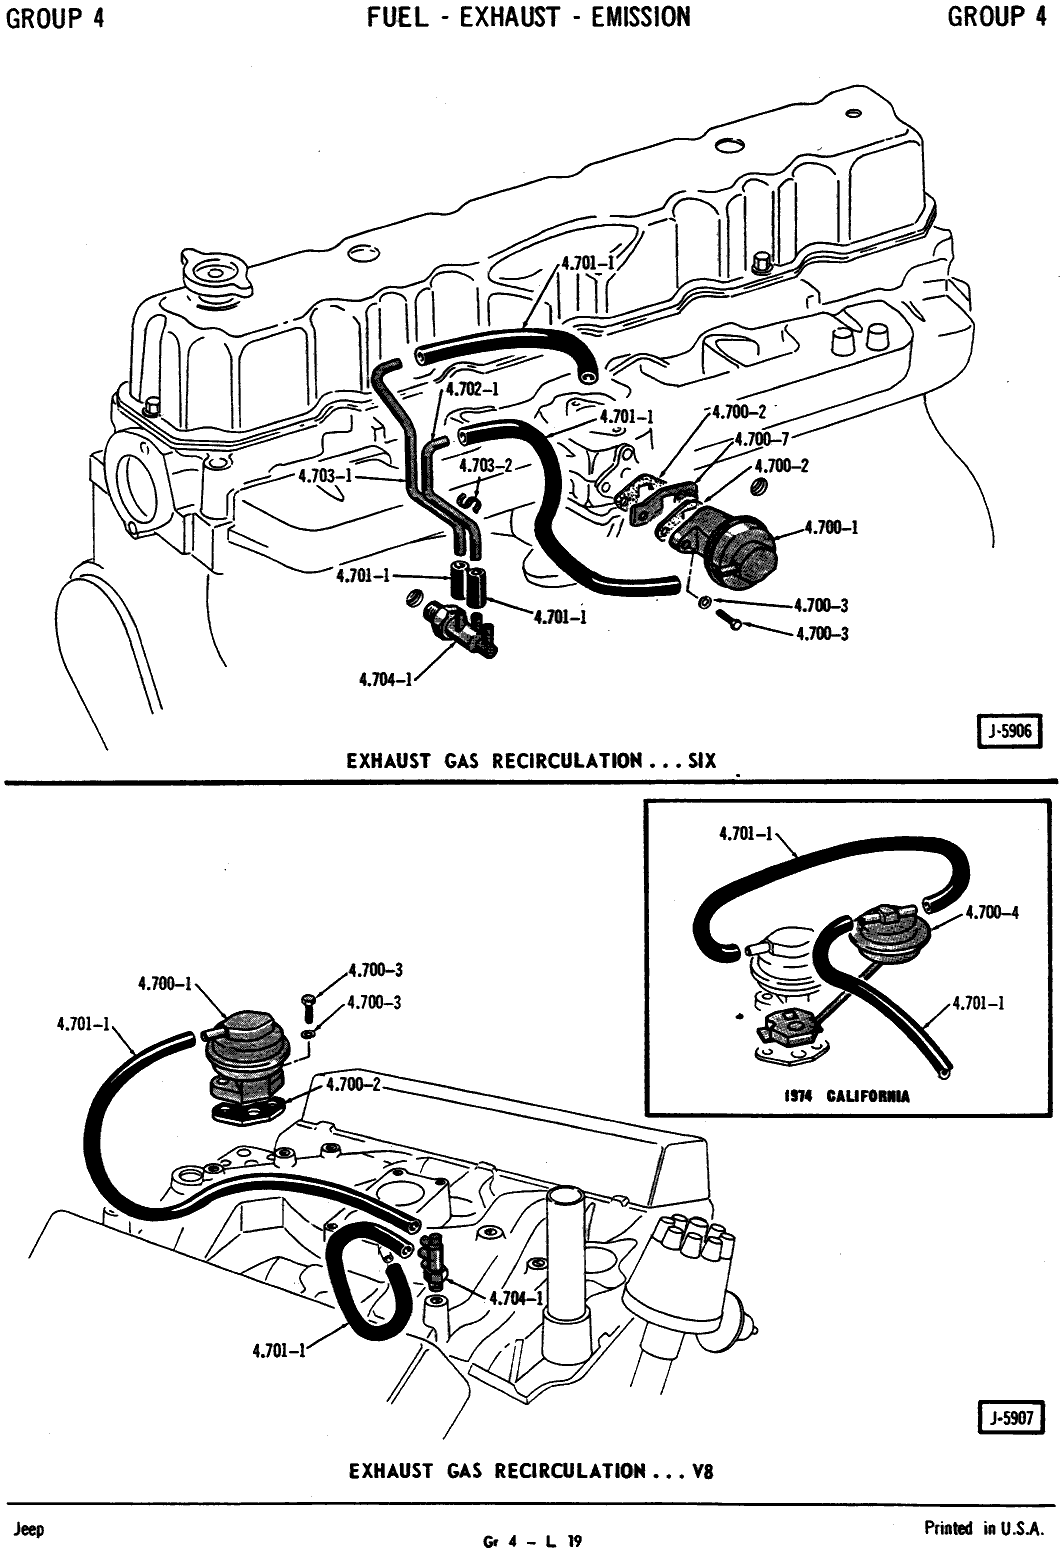 1999 jeep grand cherokee vacuum hose diagram